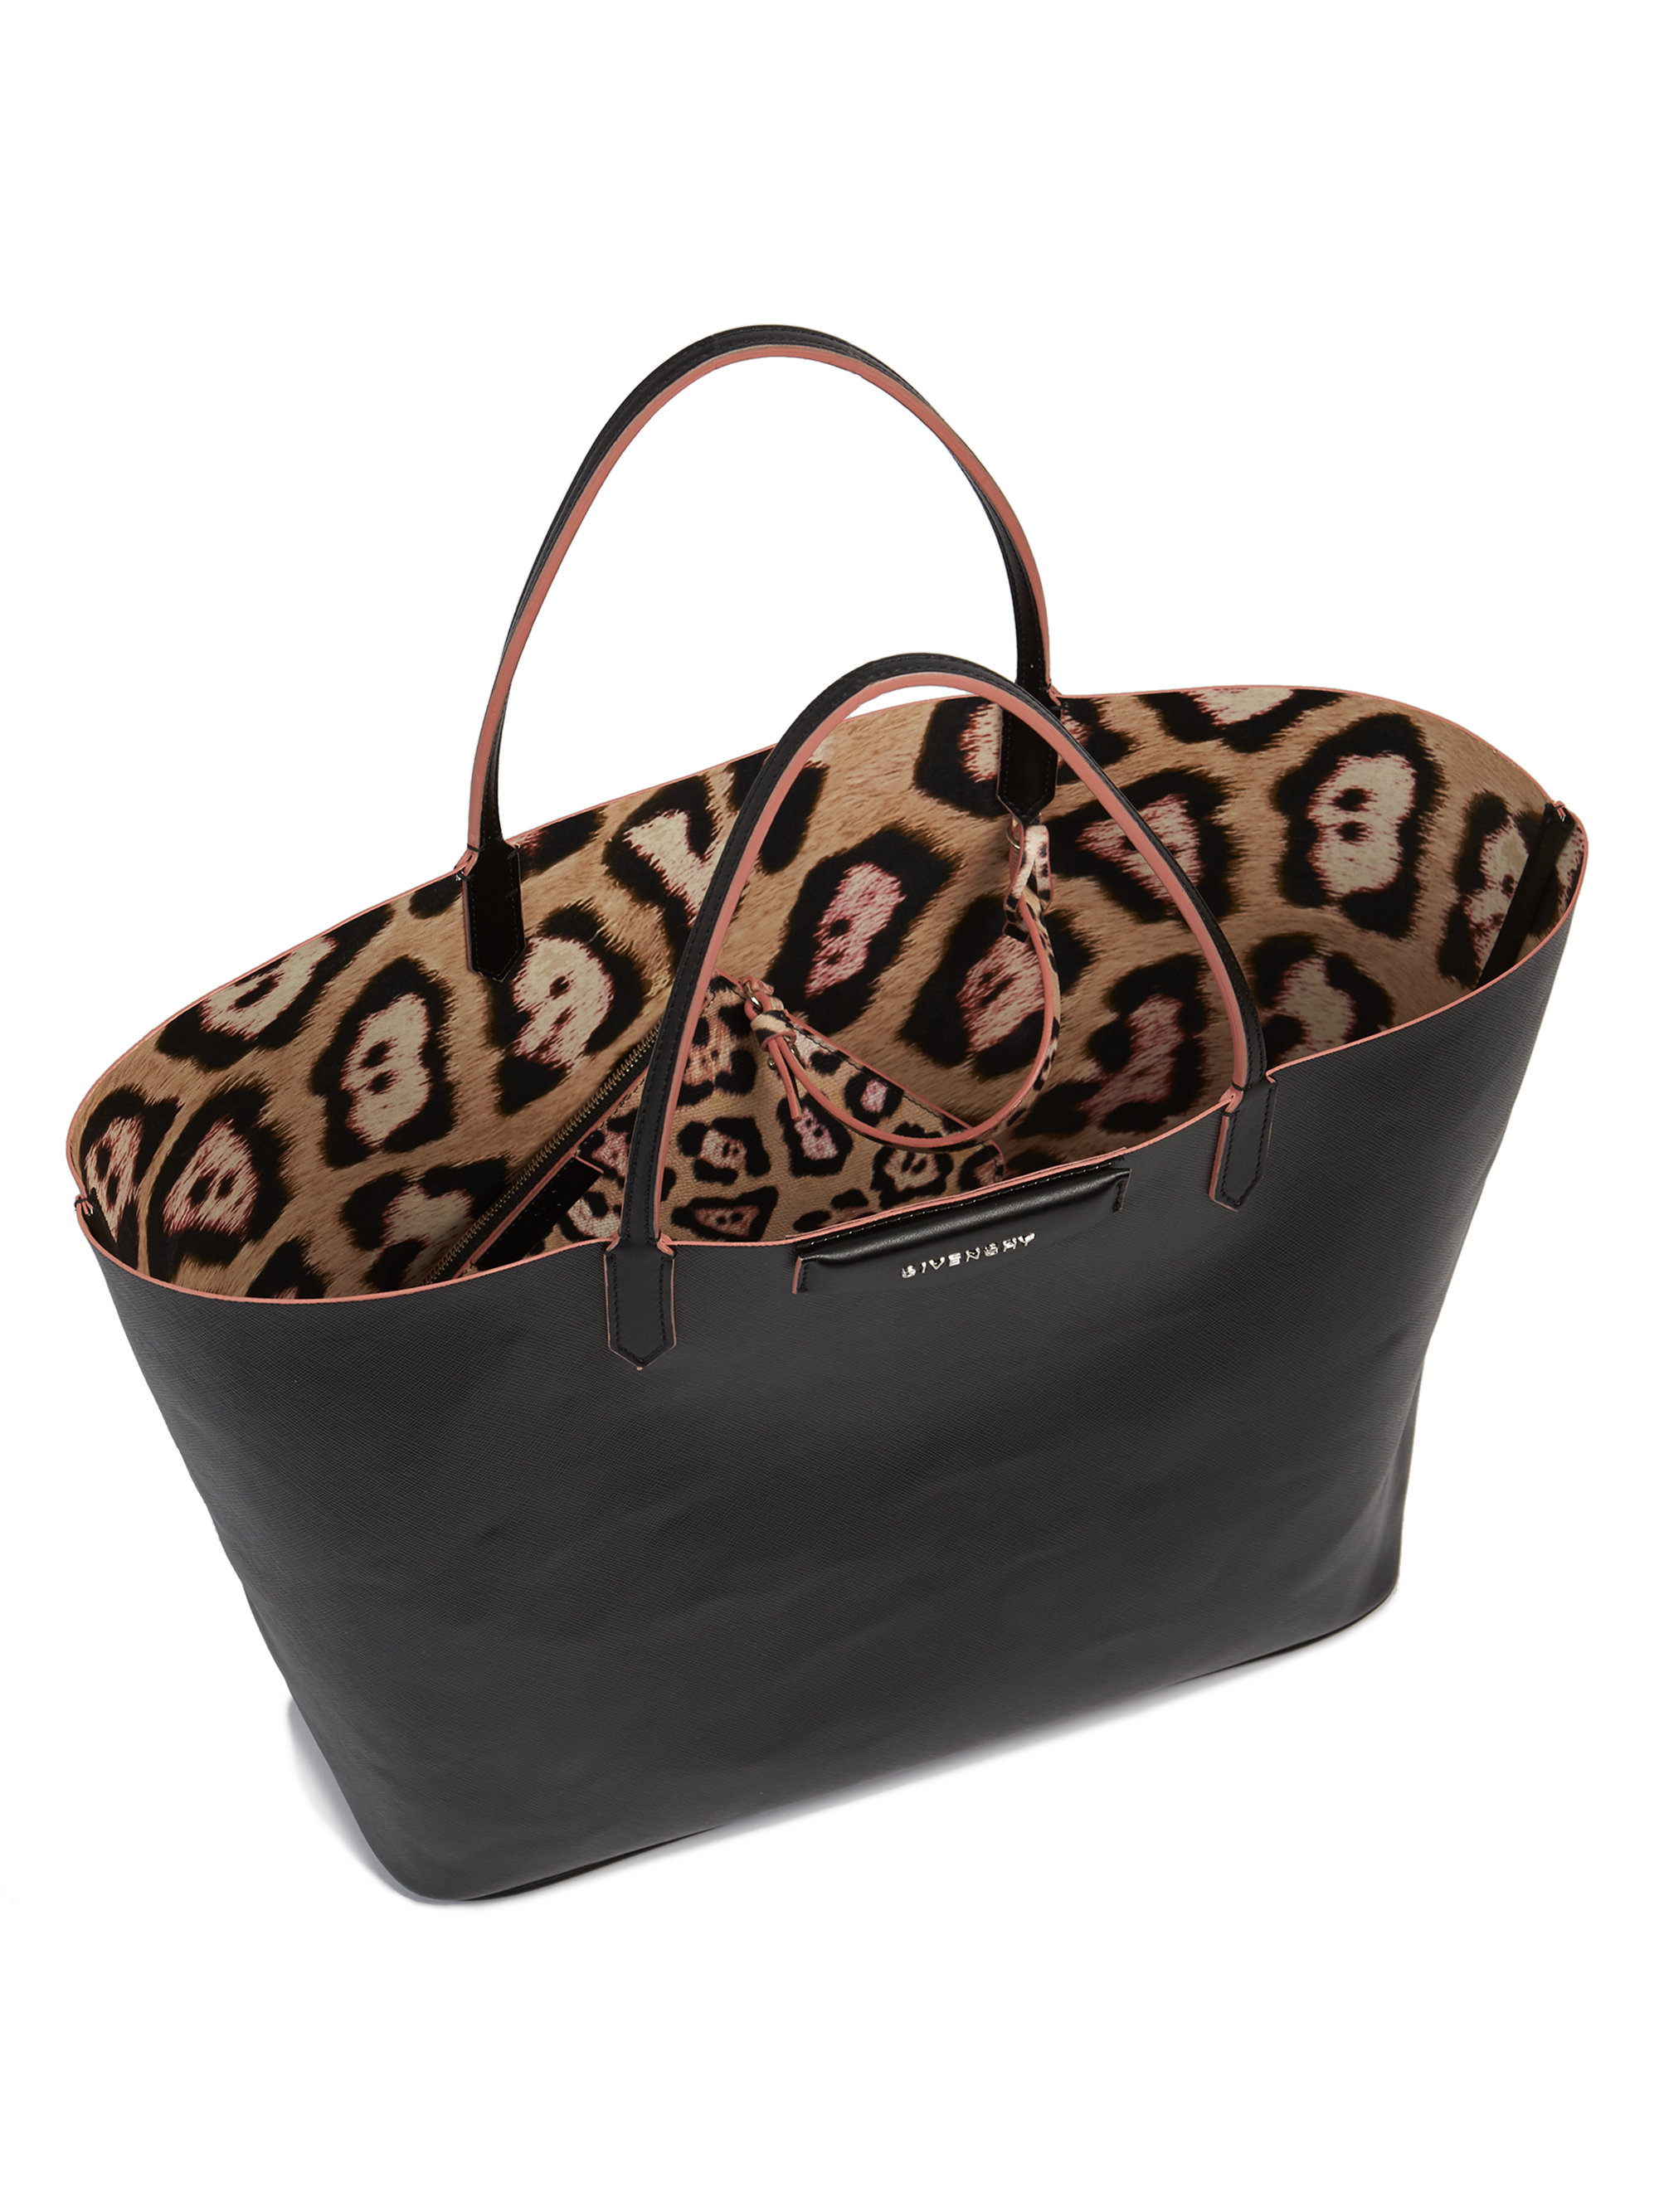 1aaf4095c067 Lyst - Givenchy Antigona Large Coated Canvas Tote in Black